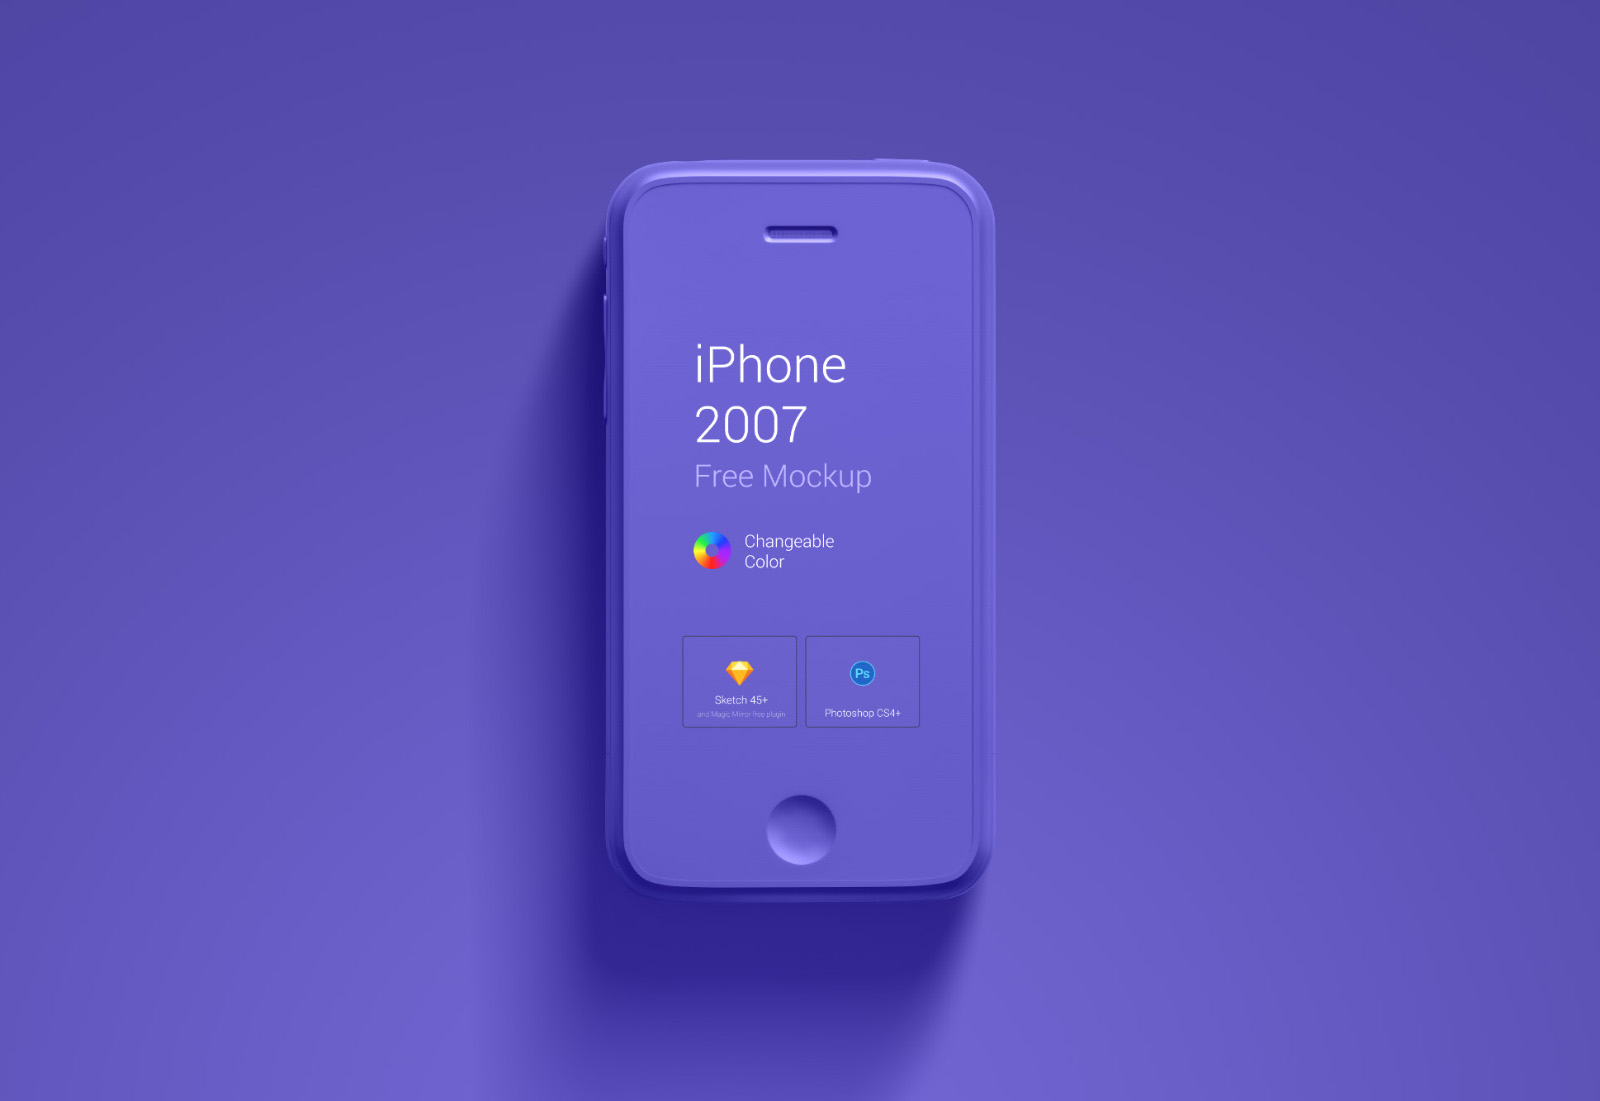 First Generation iPhone Mockup